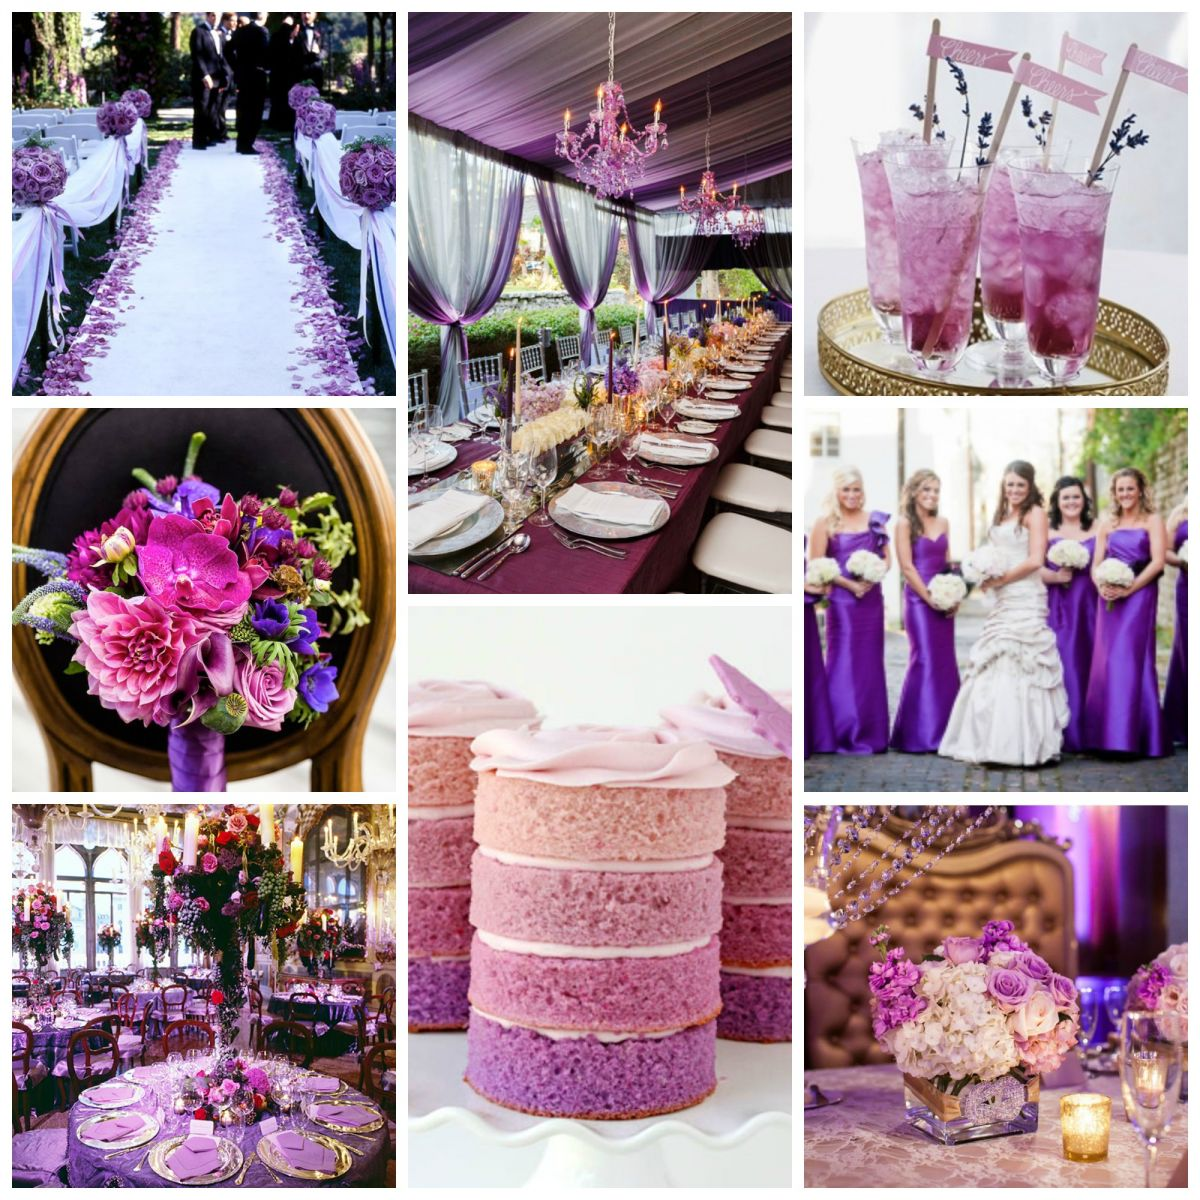 Top Wedding Color Schemes For 2015